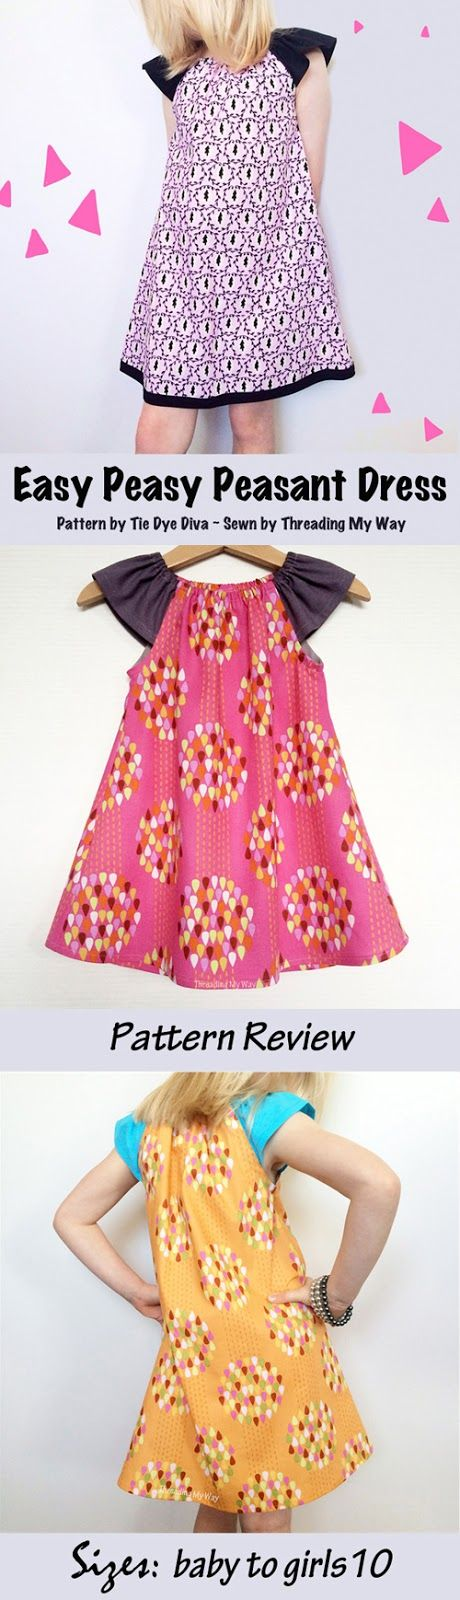 Easy Peasy Peasant Dress - Pattern Review ~ Pattern by Tie Dye Diva ÷ Sewn by Threading My Way